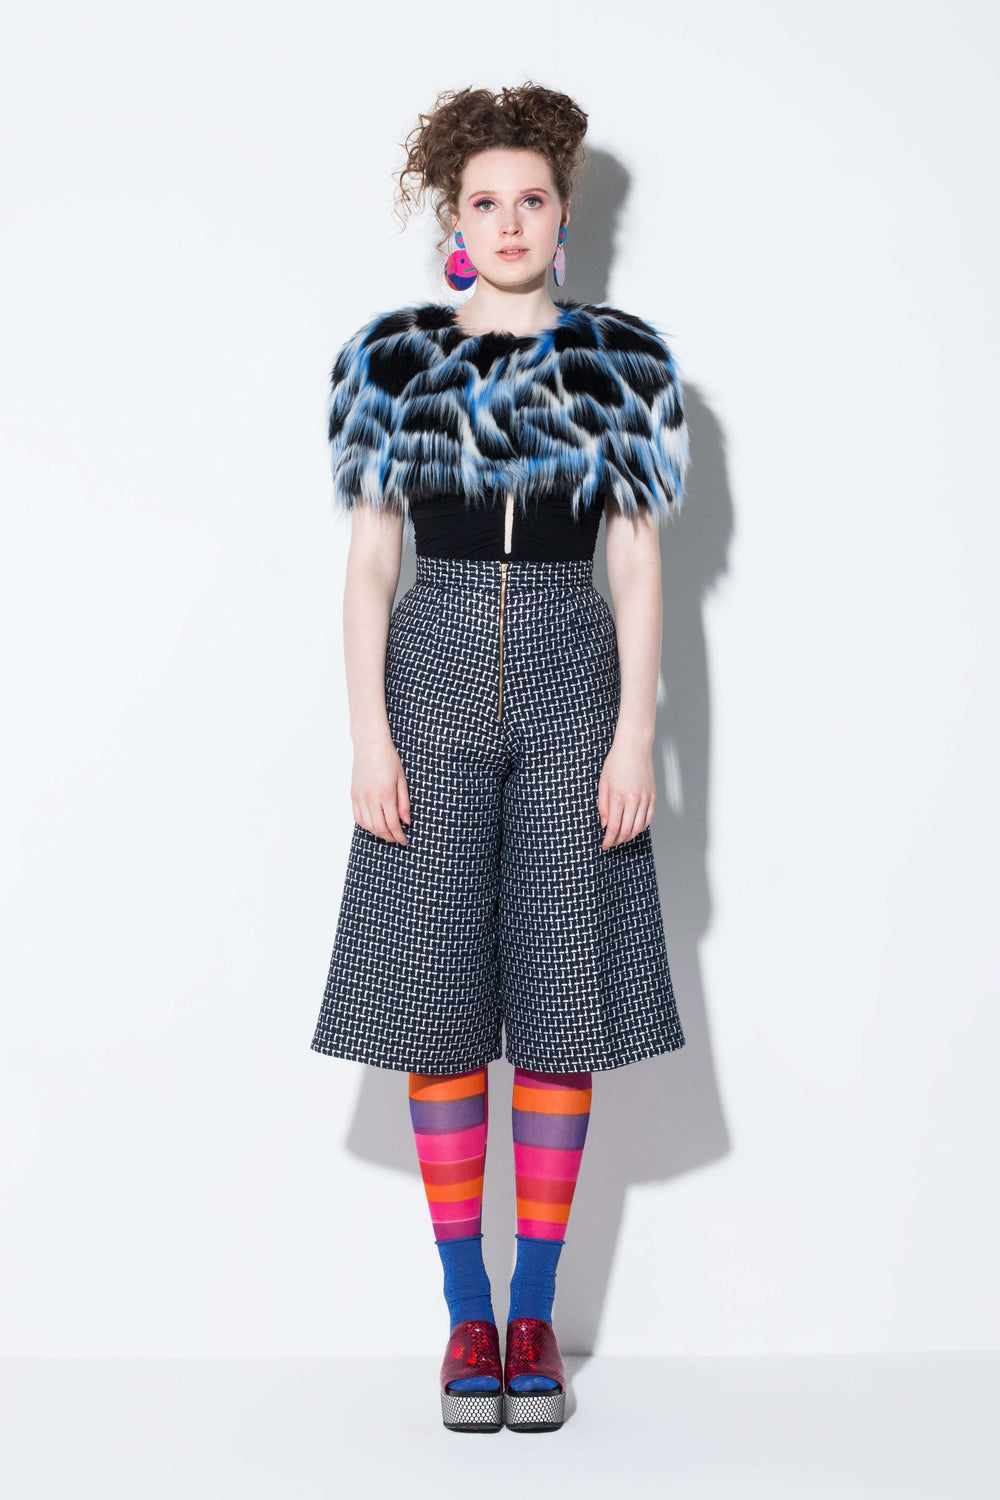 3 seasons| a practical faux fur capelete accessory from jin & yin styled with hand-painted tights